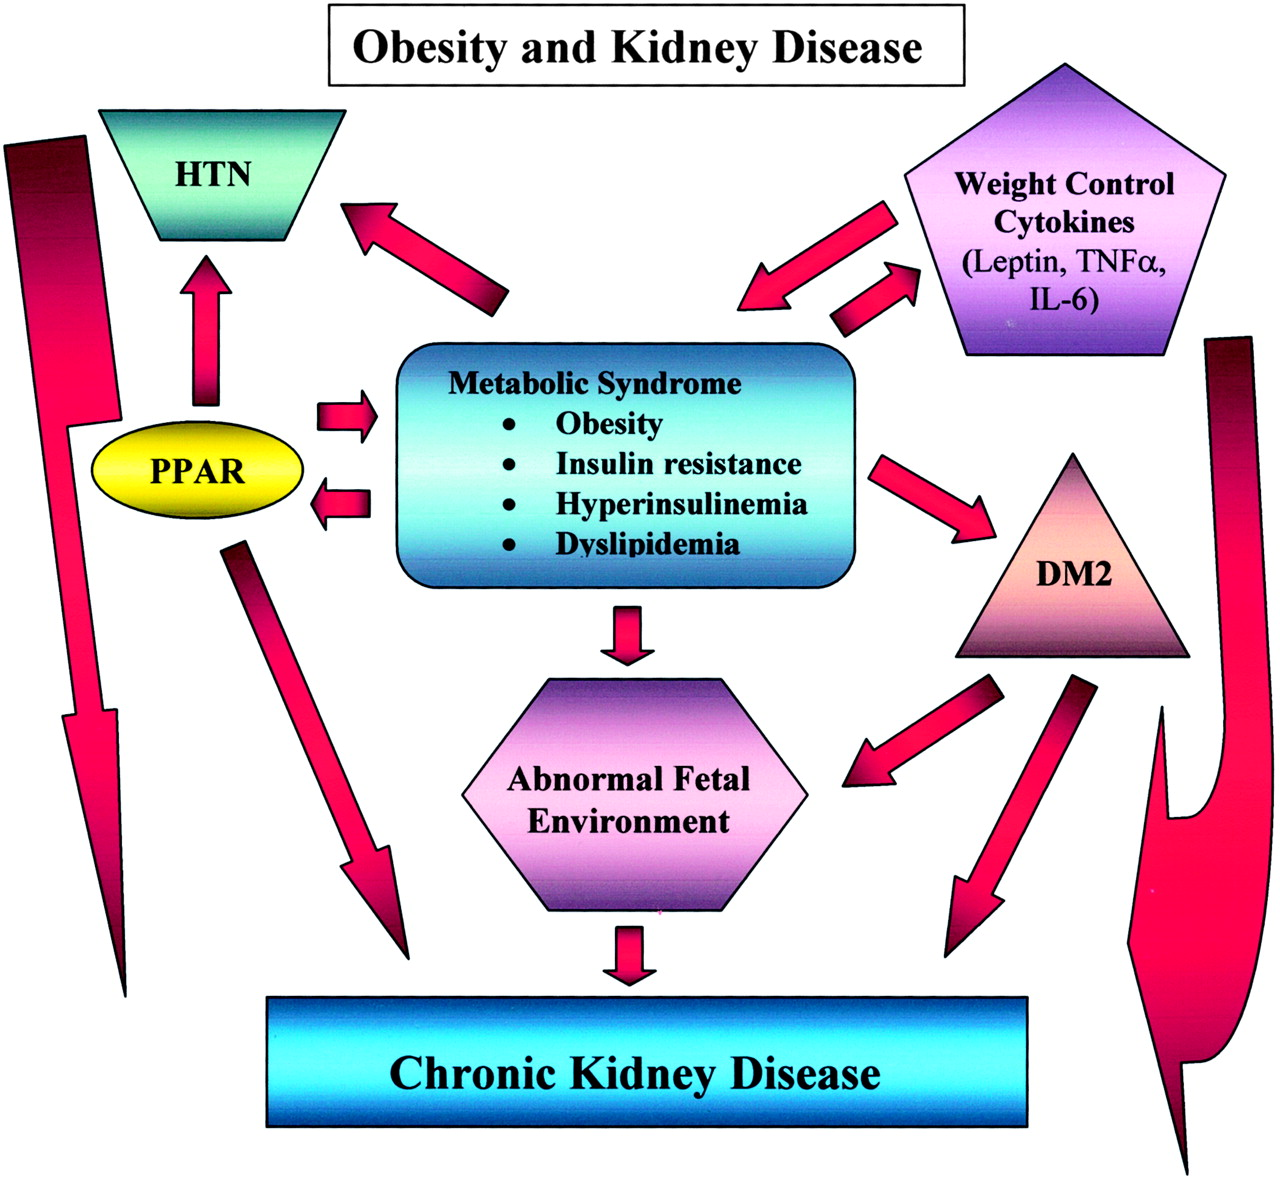 Overview Obesity What Does It Have To Do With Kidney Disease